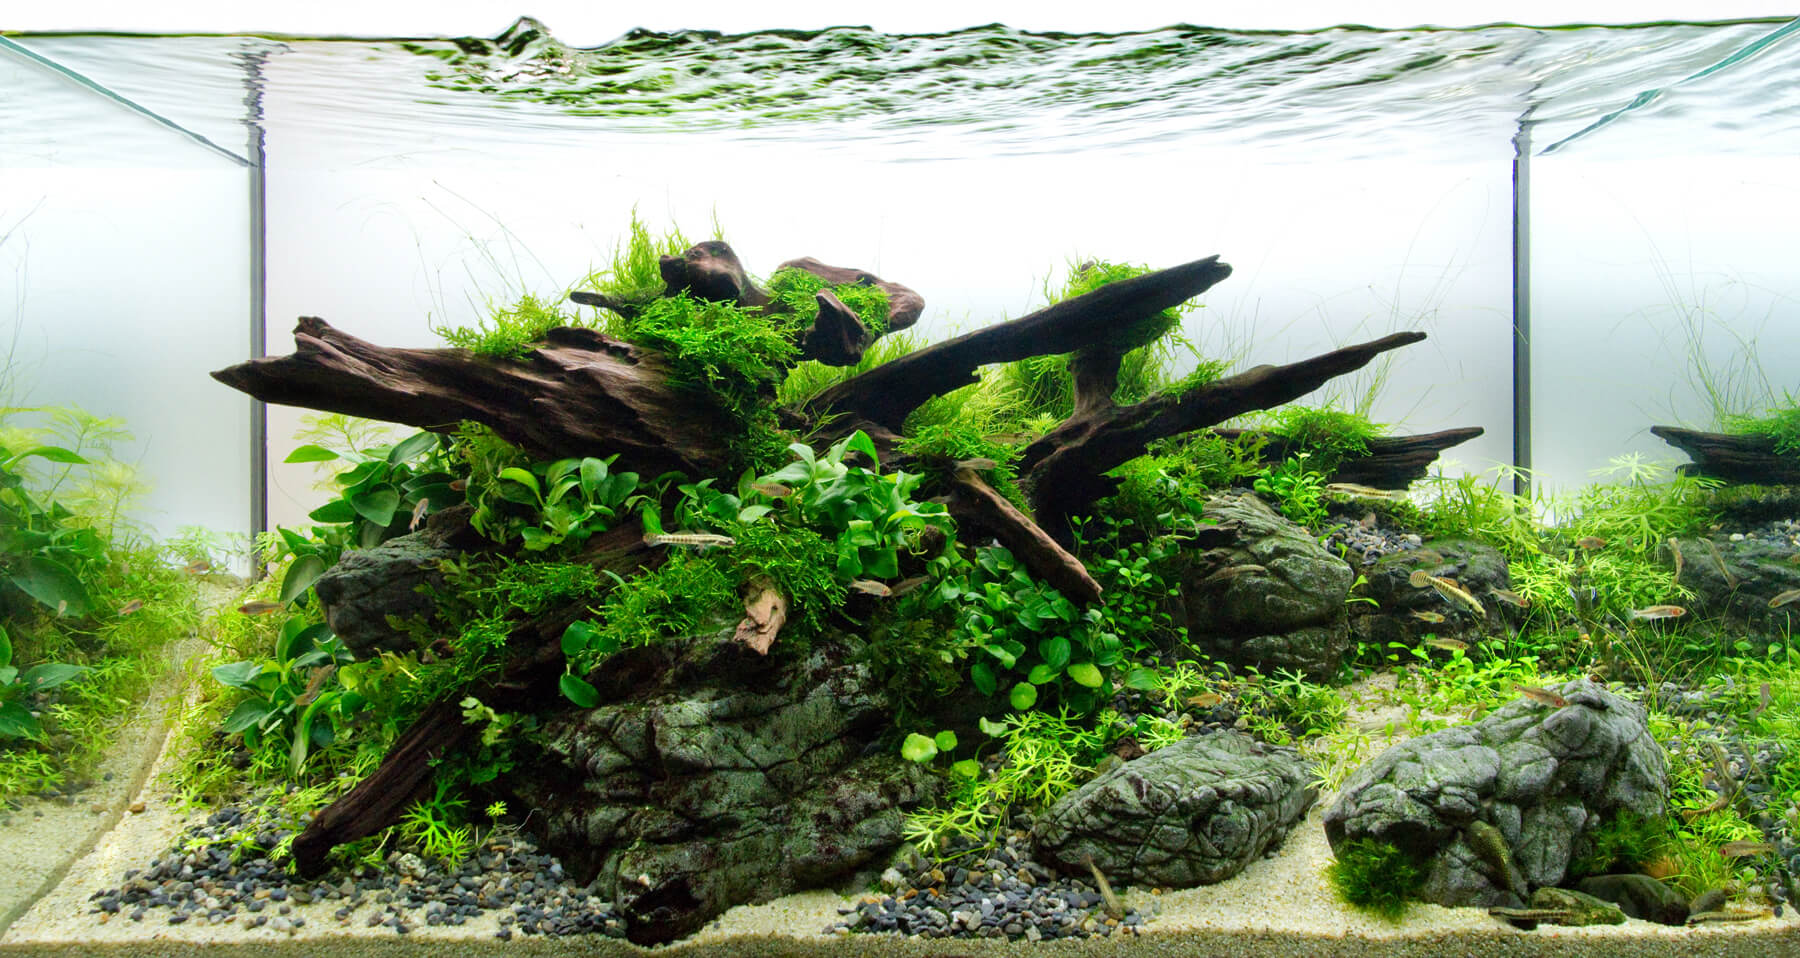 Aquascape Design Aquascaping Full Greater Des Moines Botanical Garden